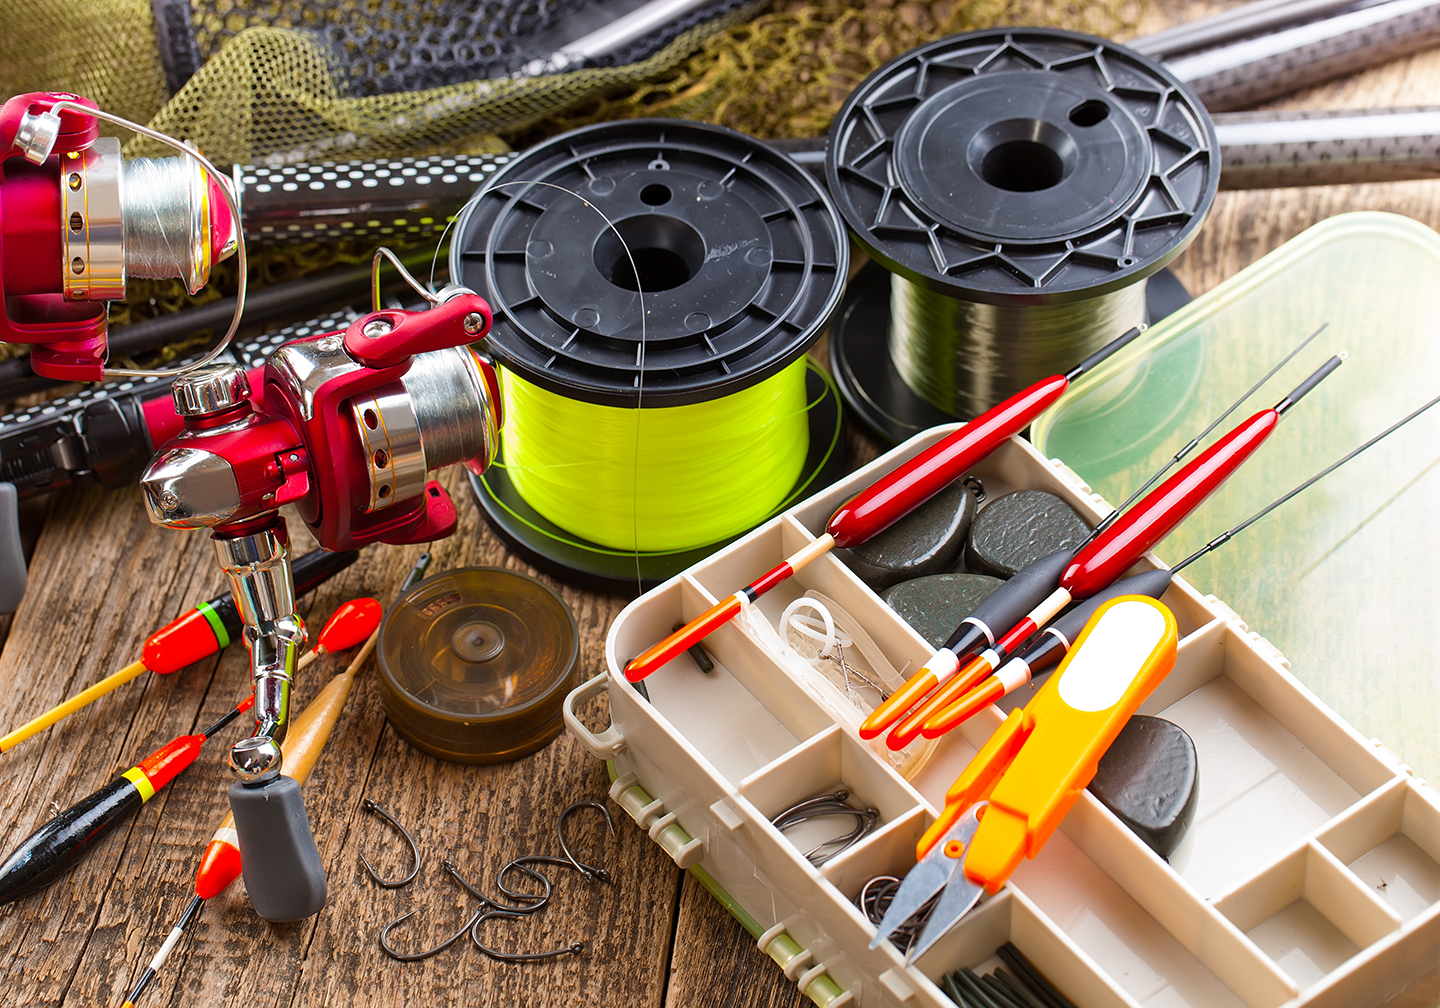 A selection of fishing tackle: fishing line, bobbers, hooks, and more.